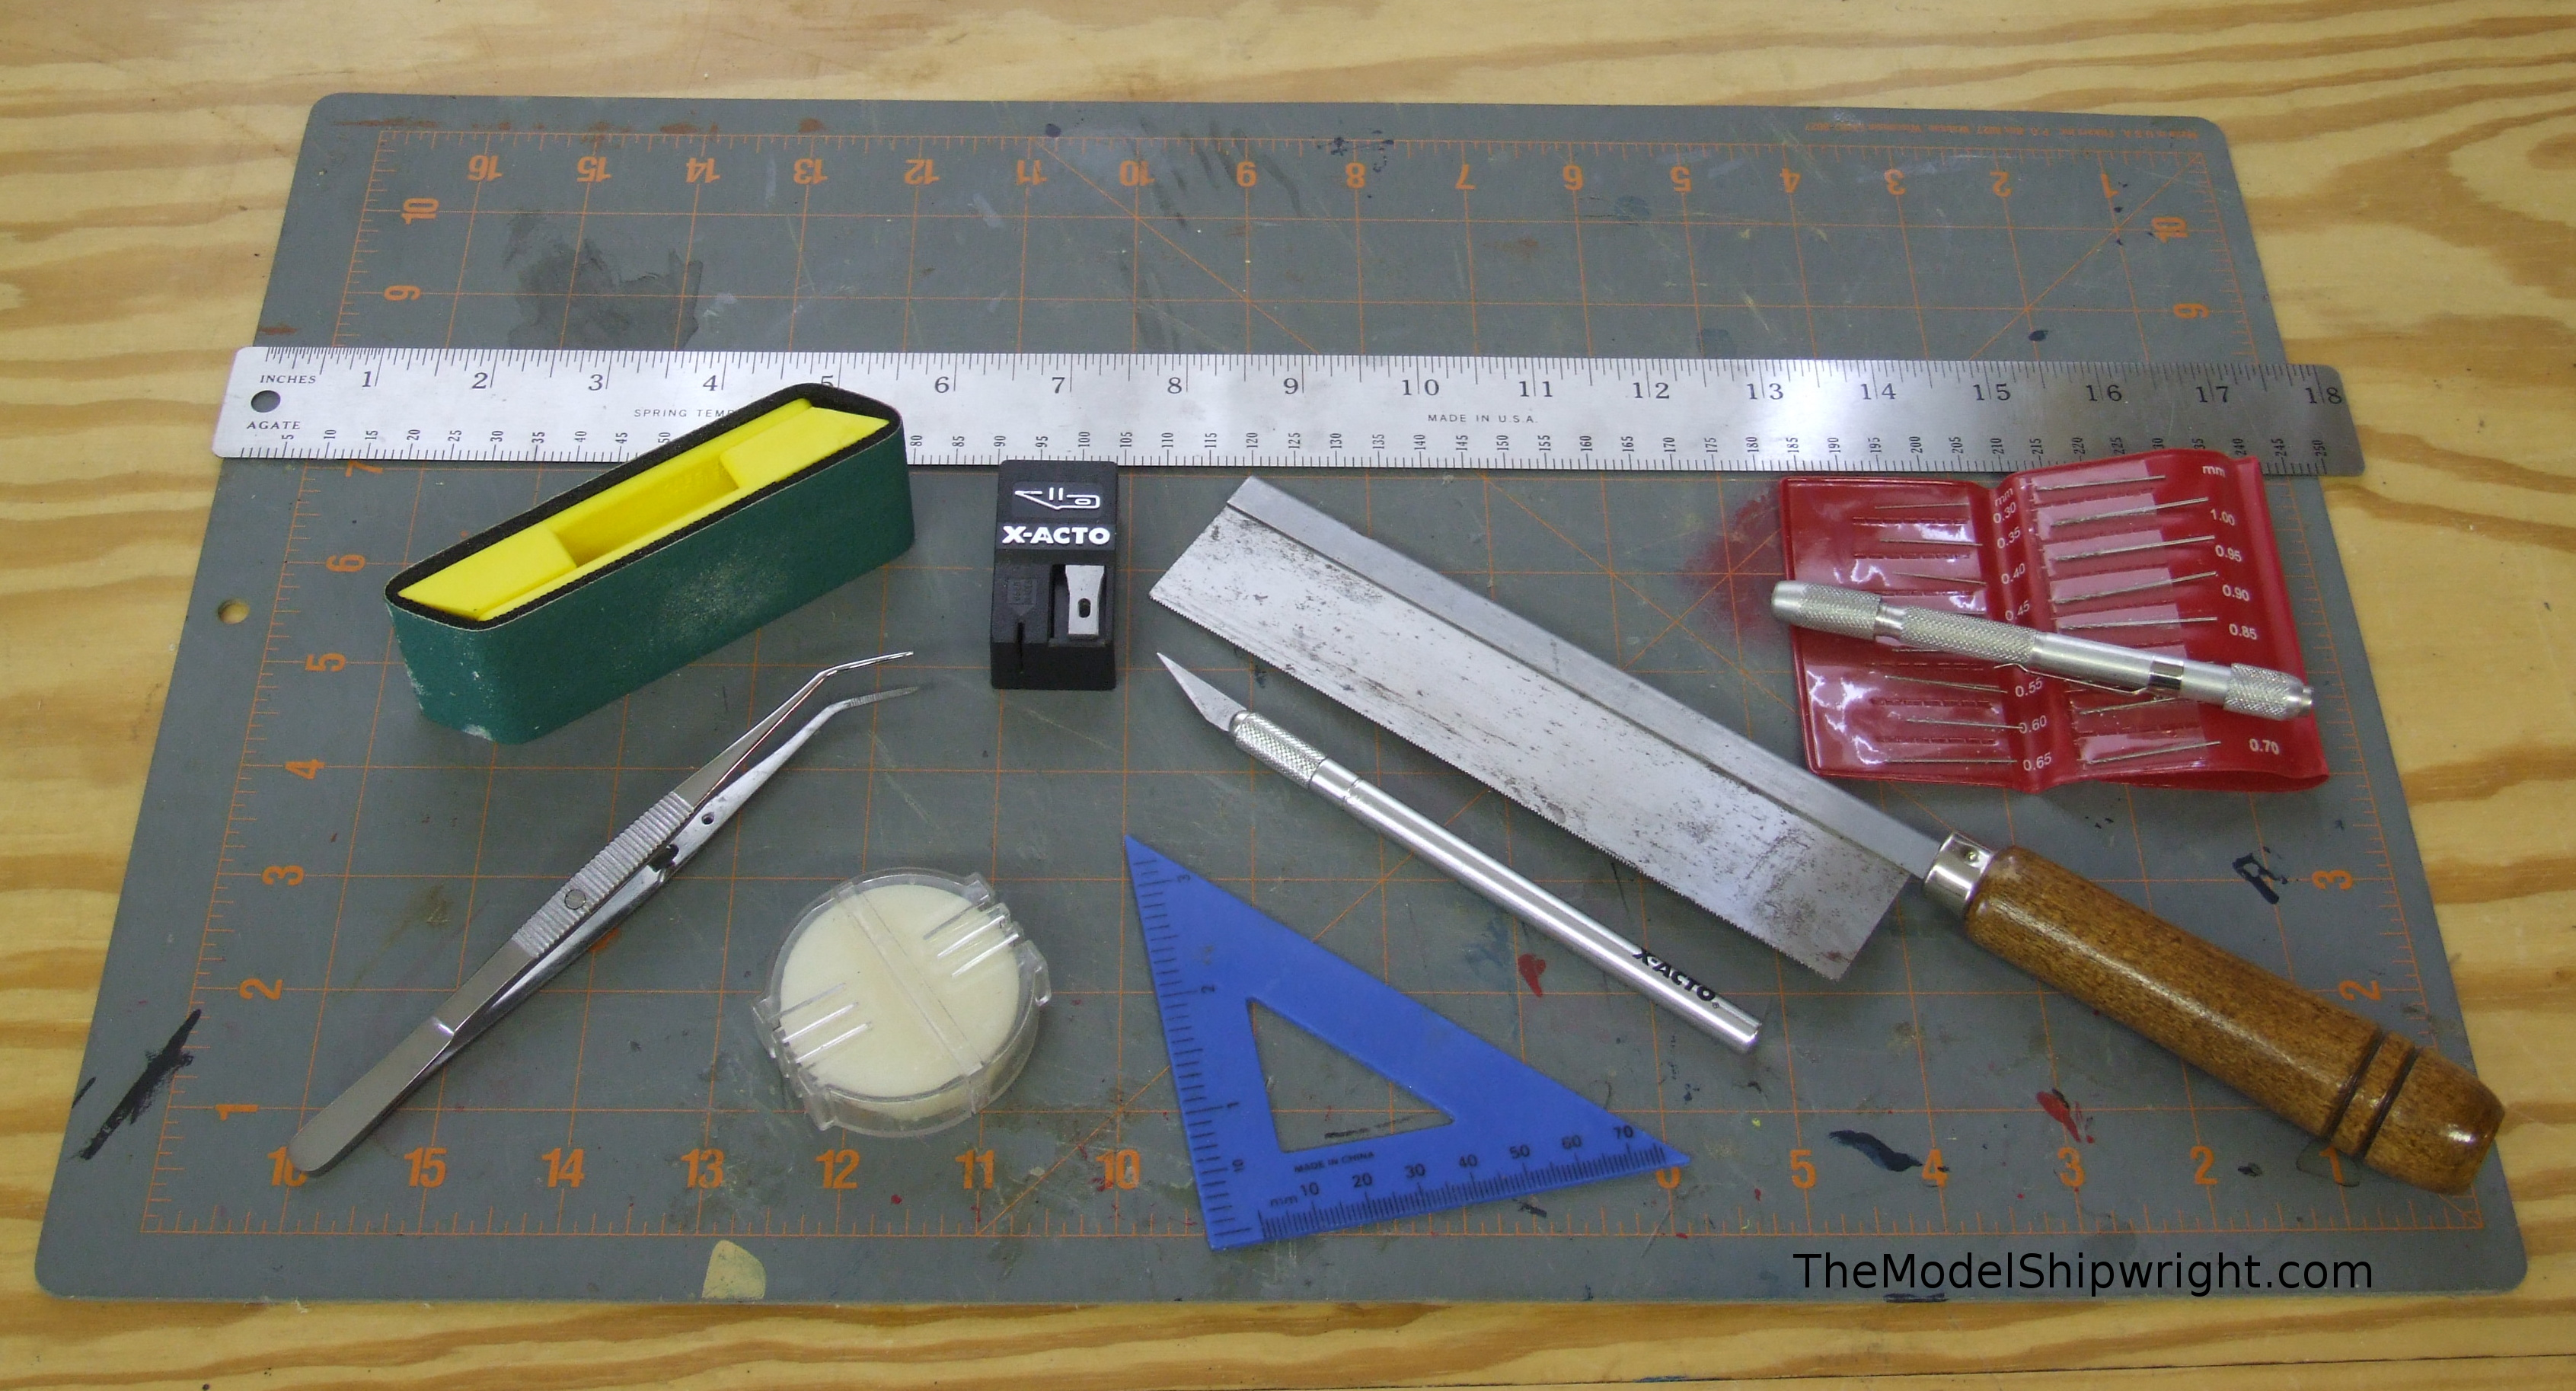 Model boats the model shipwright Tools to build a house